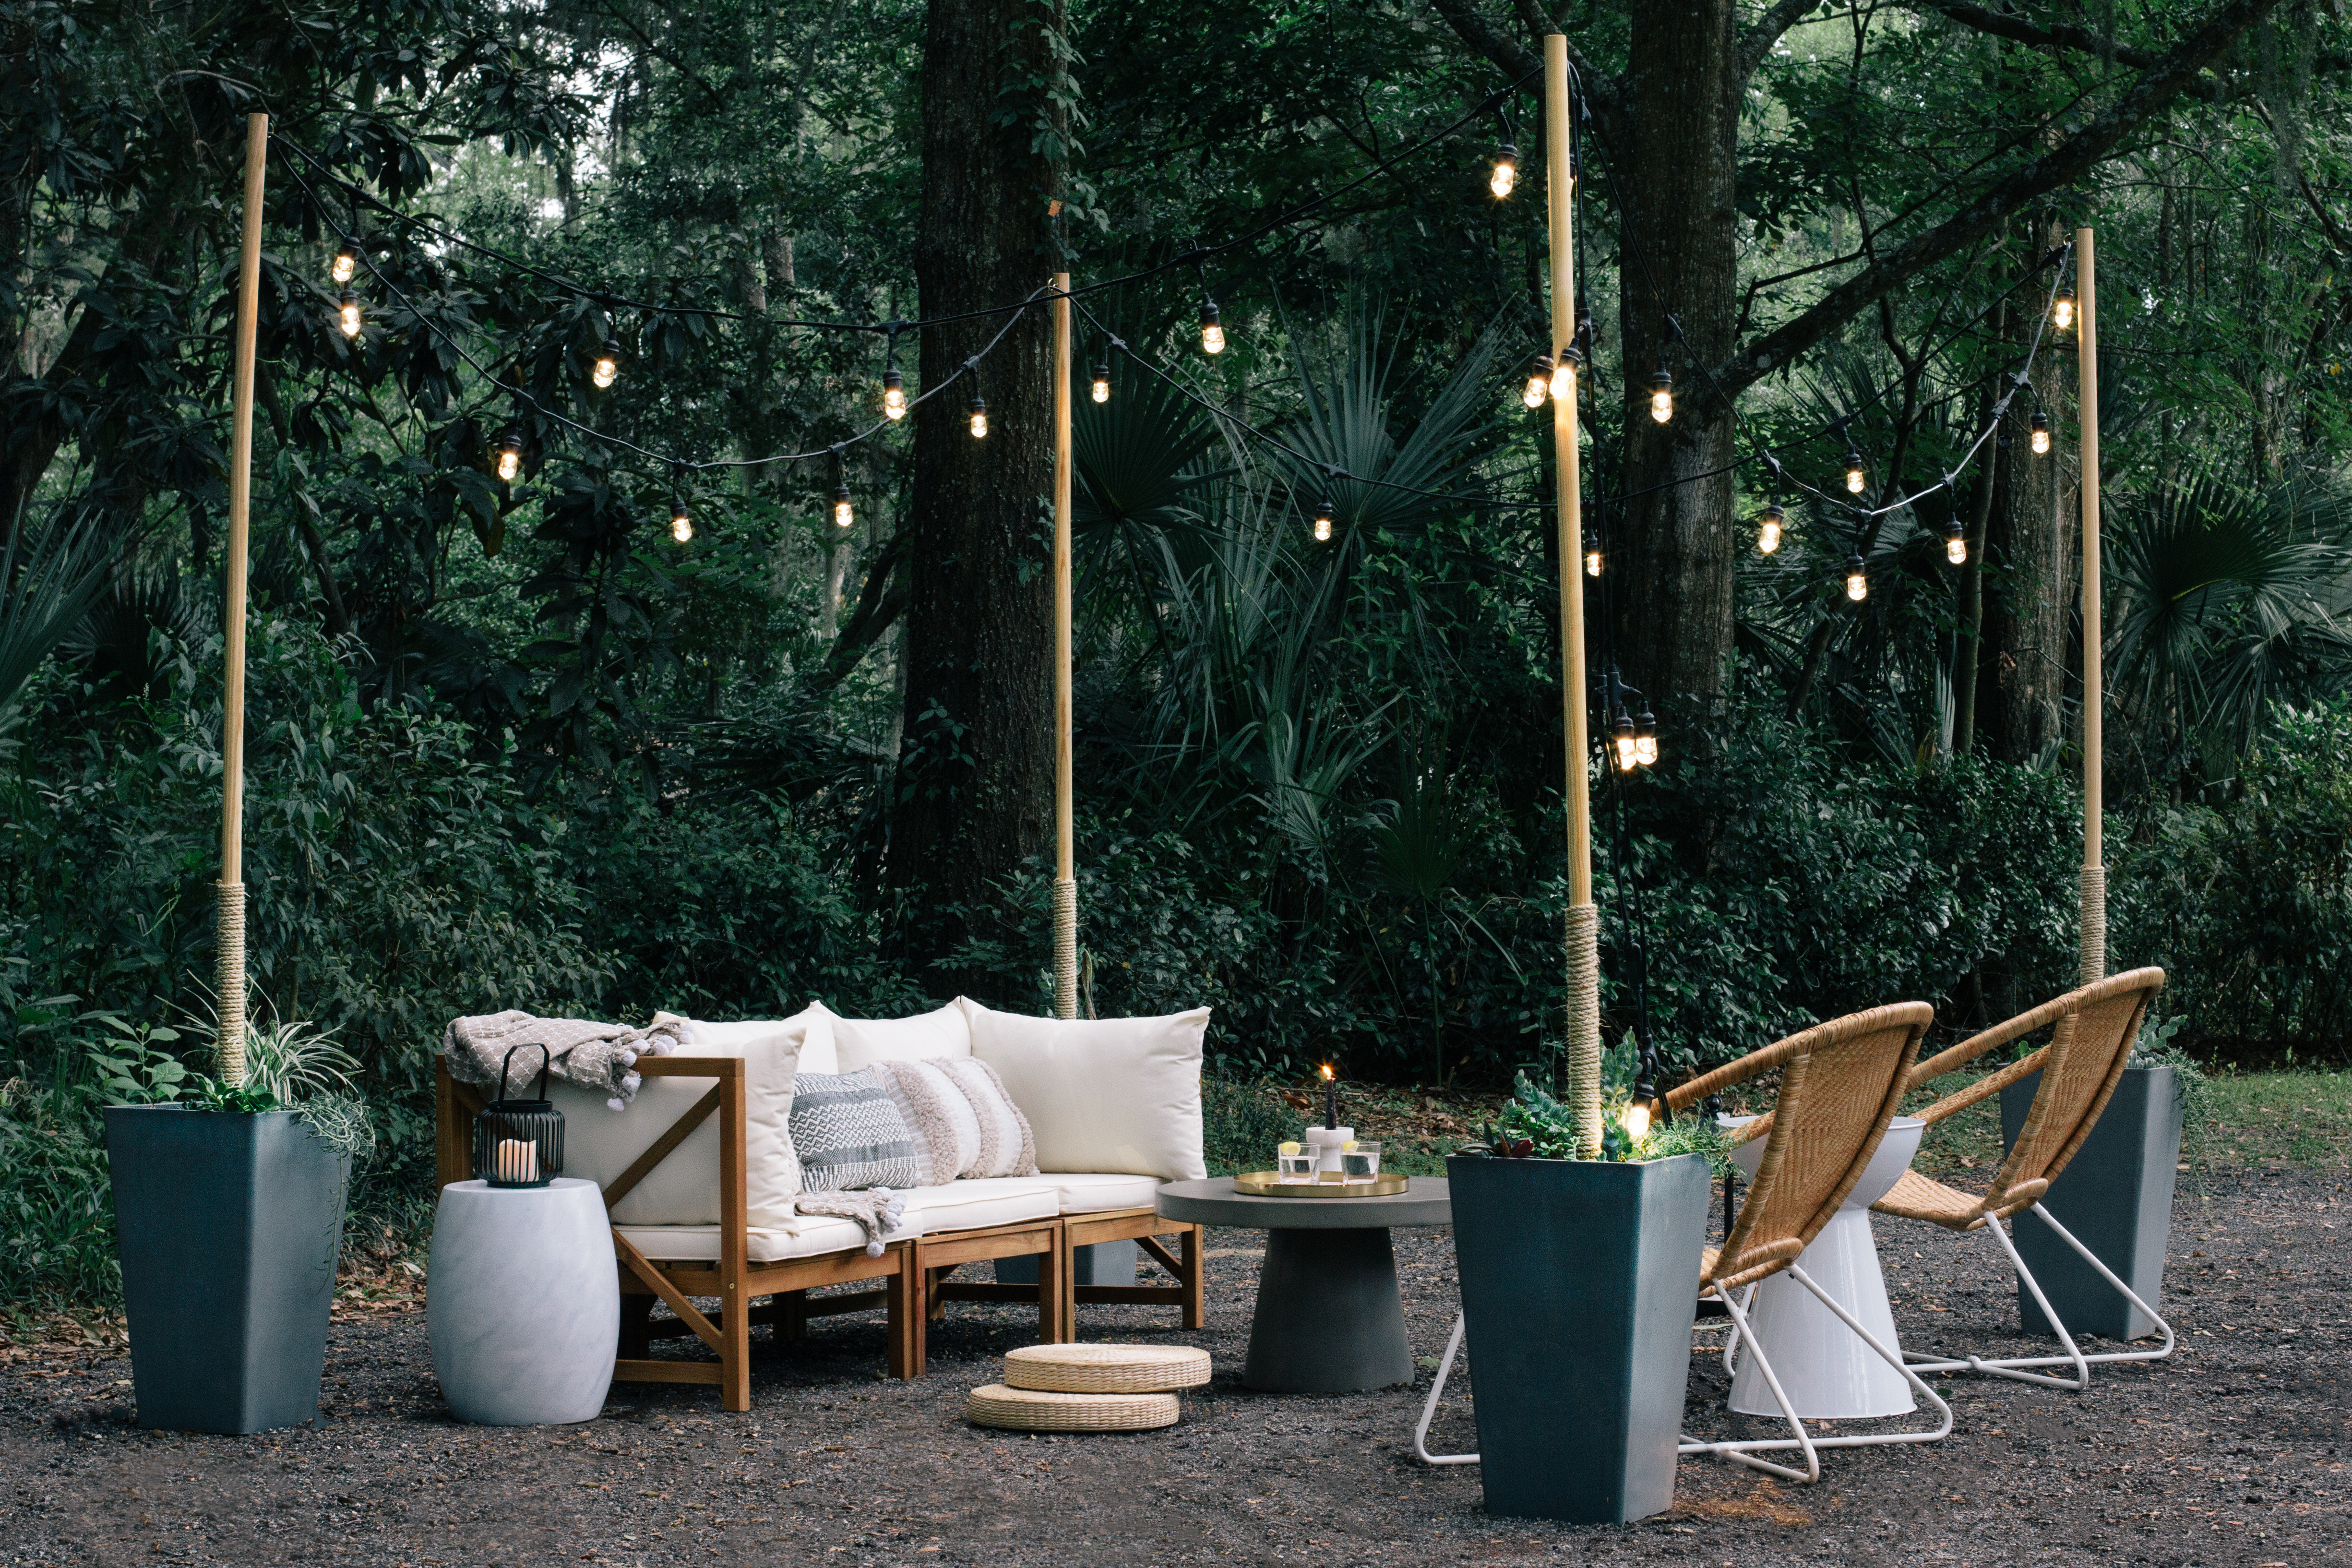 DIY & Done: Create an Outdoor Entertaining Space With String Light Poles